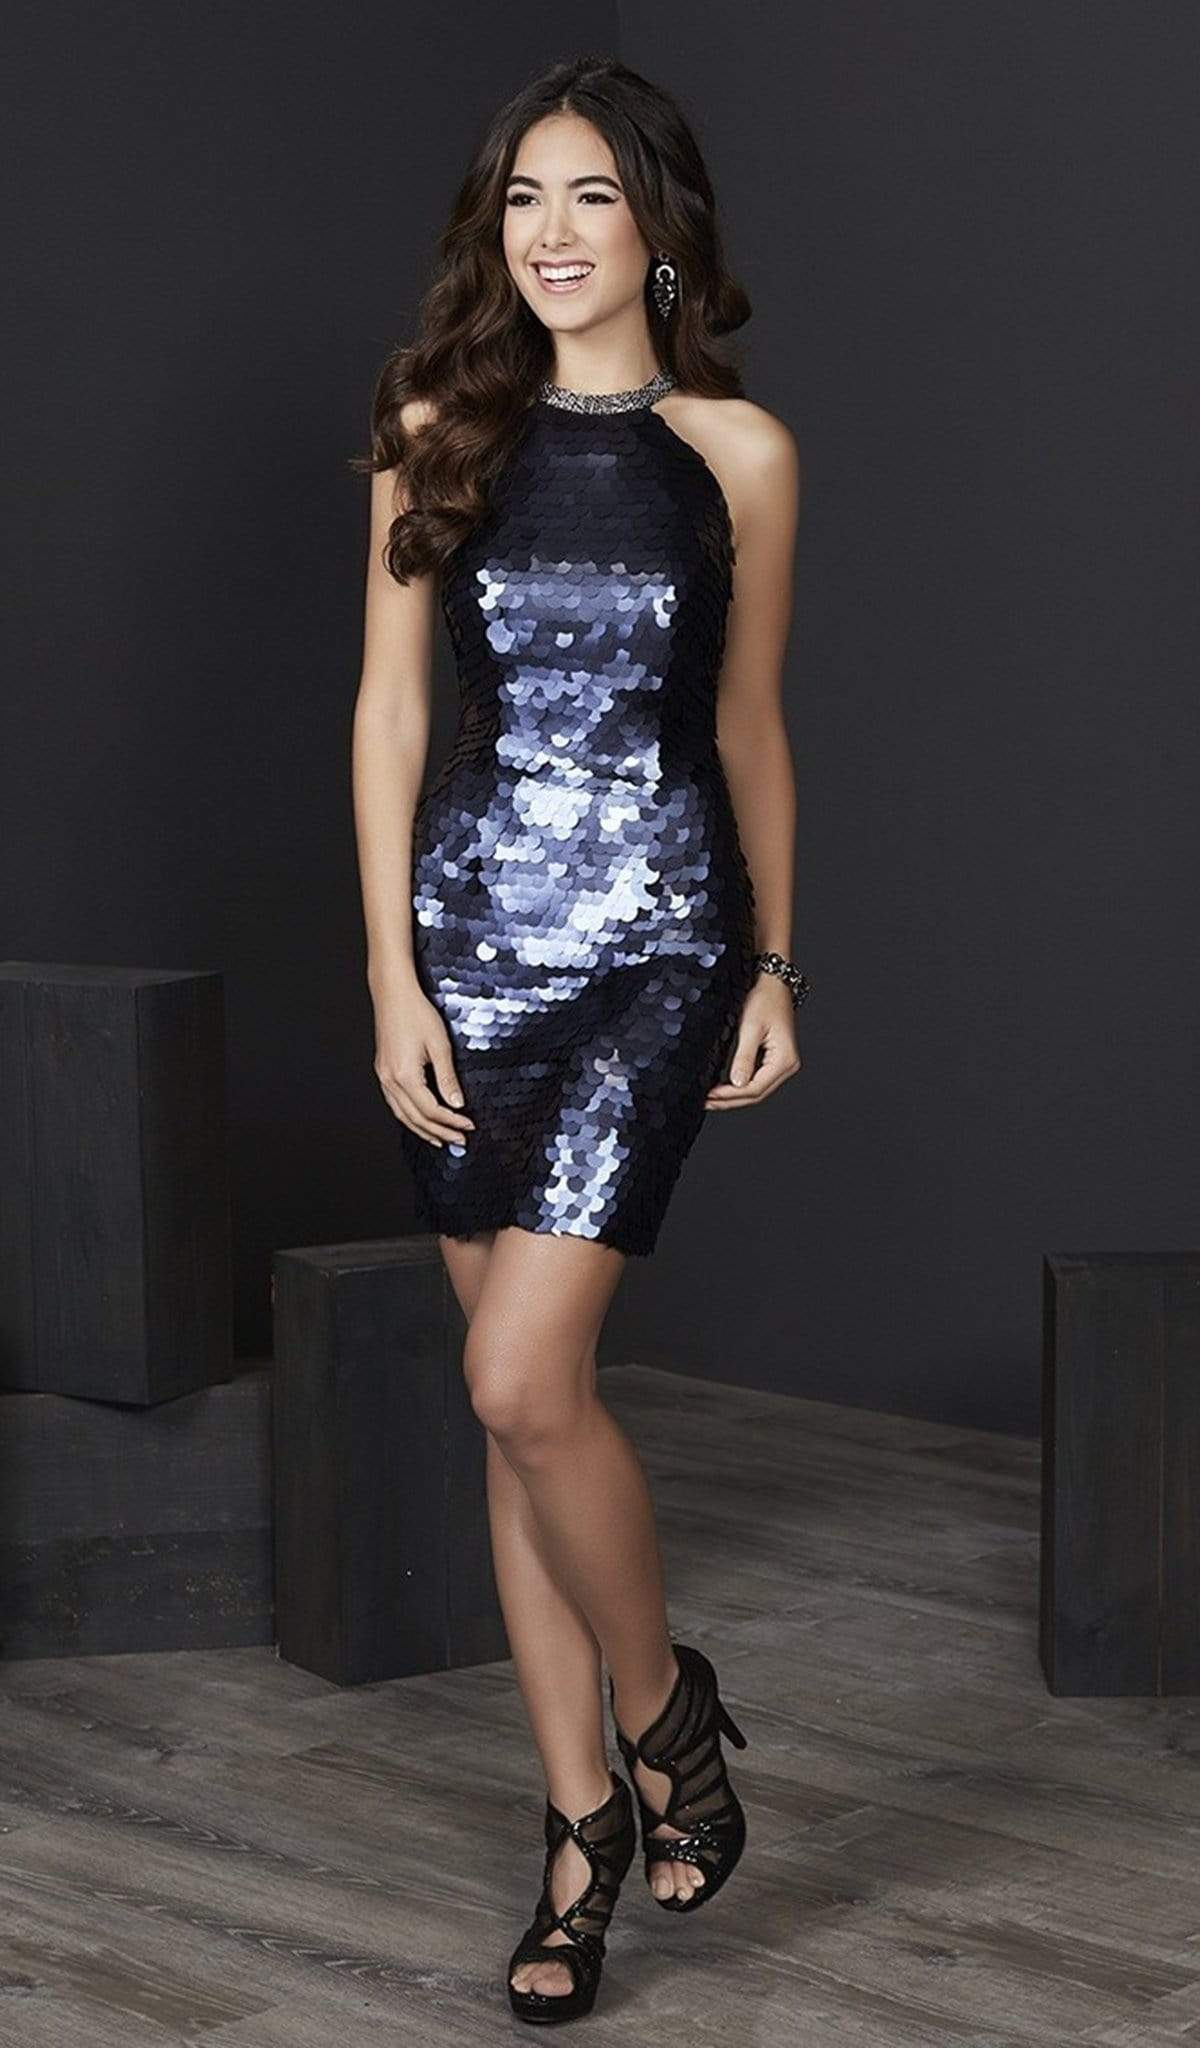 Tiffany Homecoming - 27195 Sequined High Halter Fitted Cocktail Dress from Tiffany Homecoming